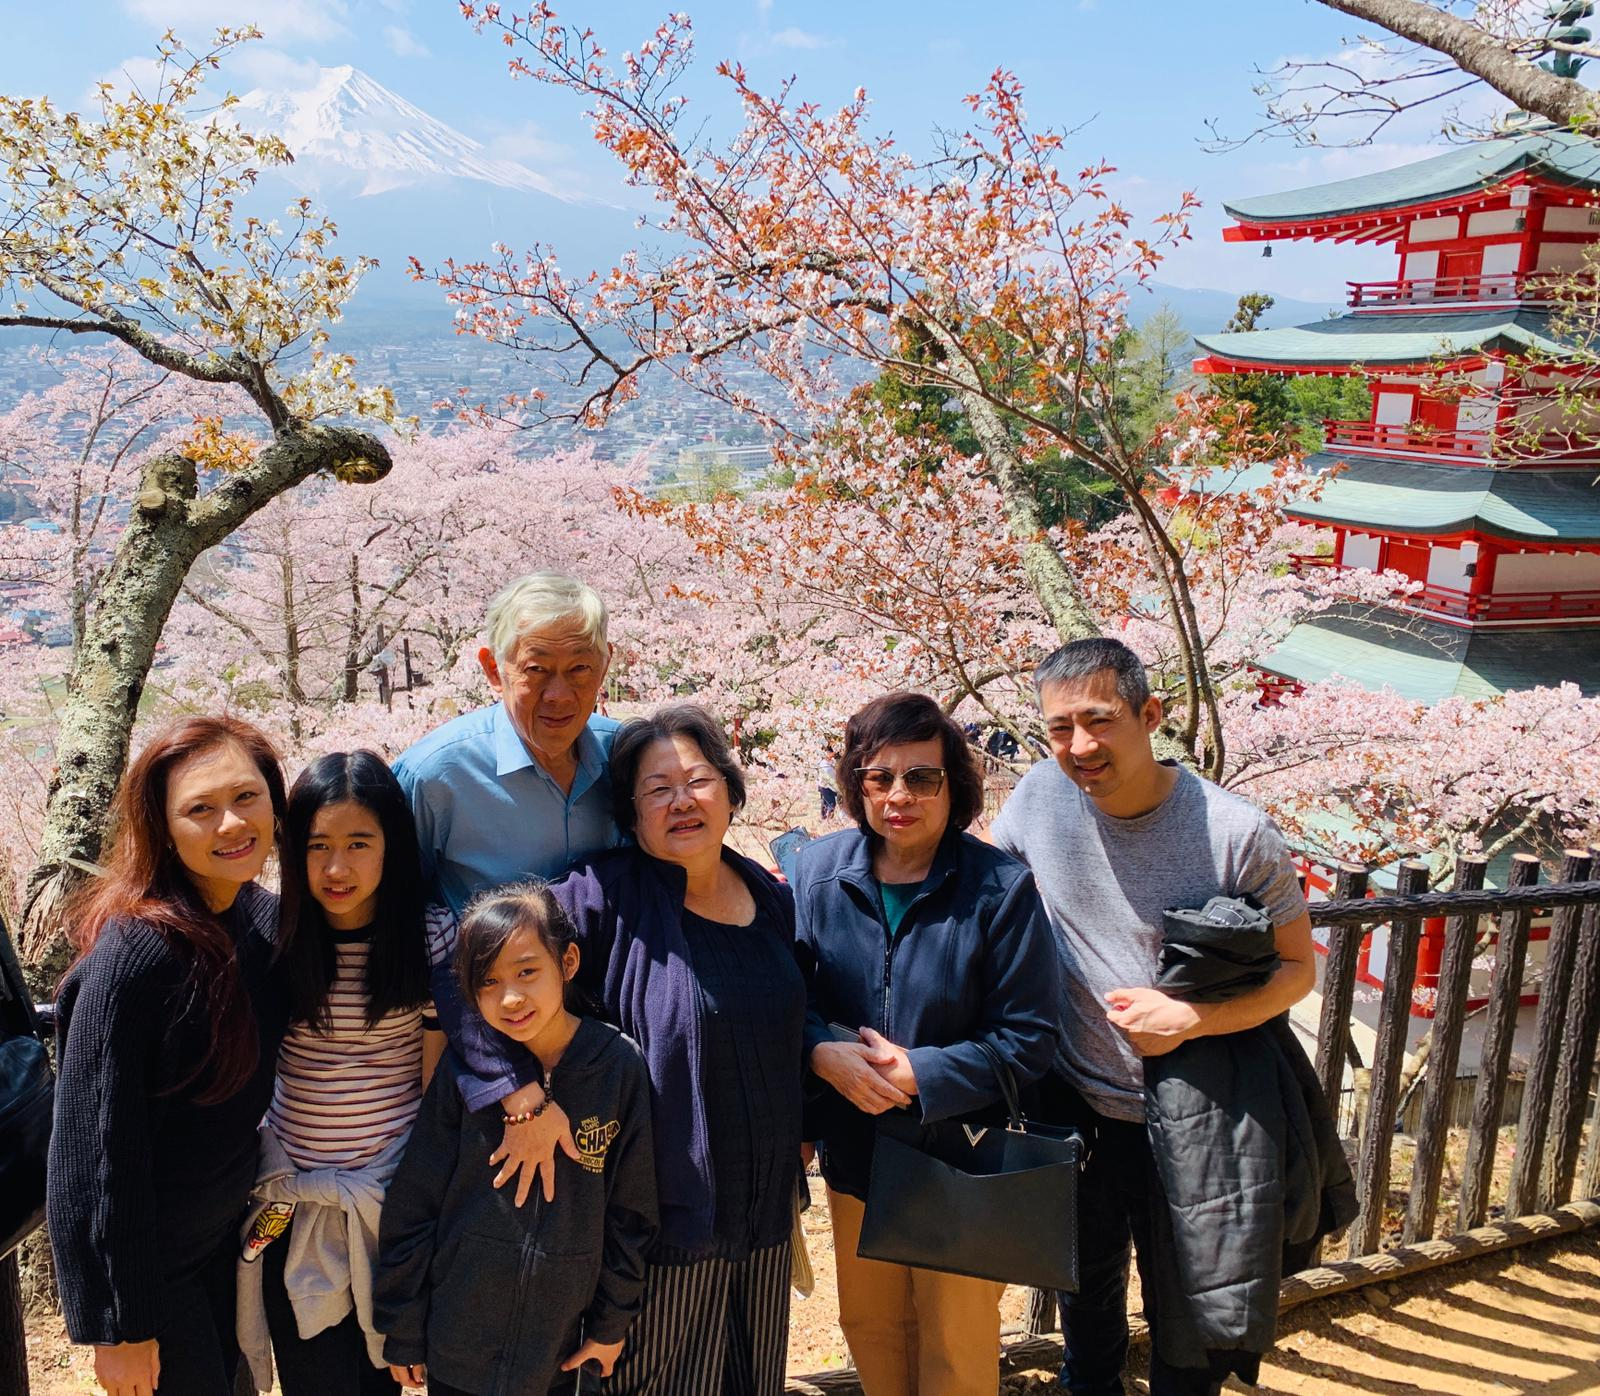 Family posing infront of pagoda and cherry blossoms